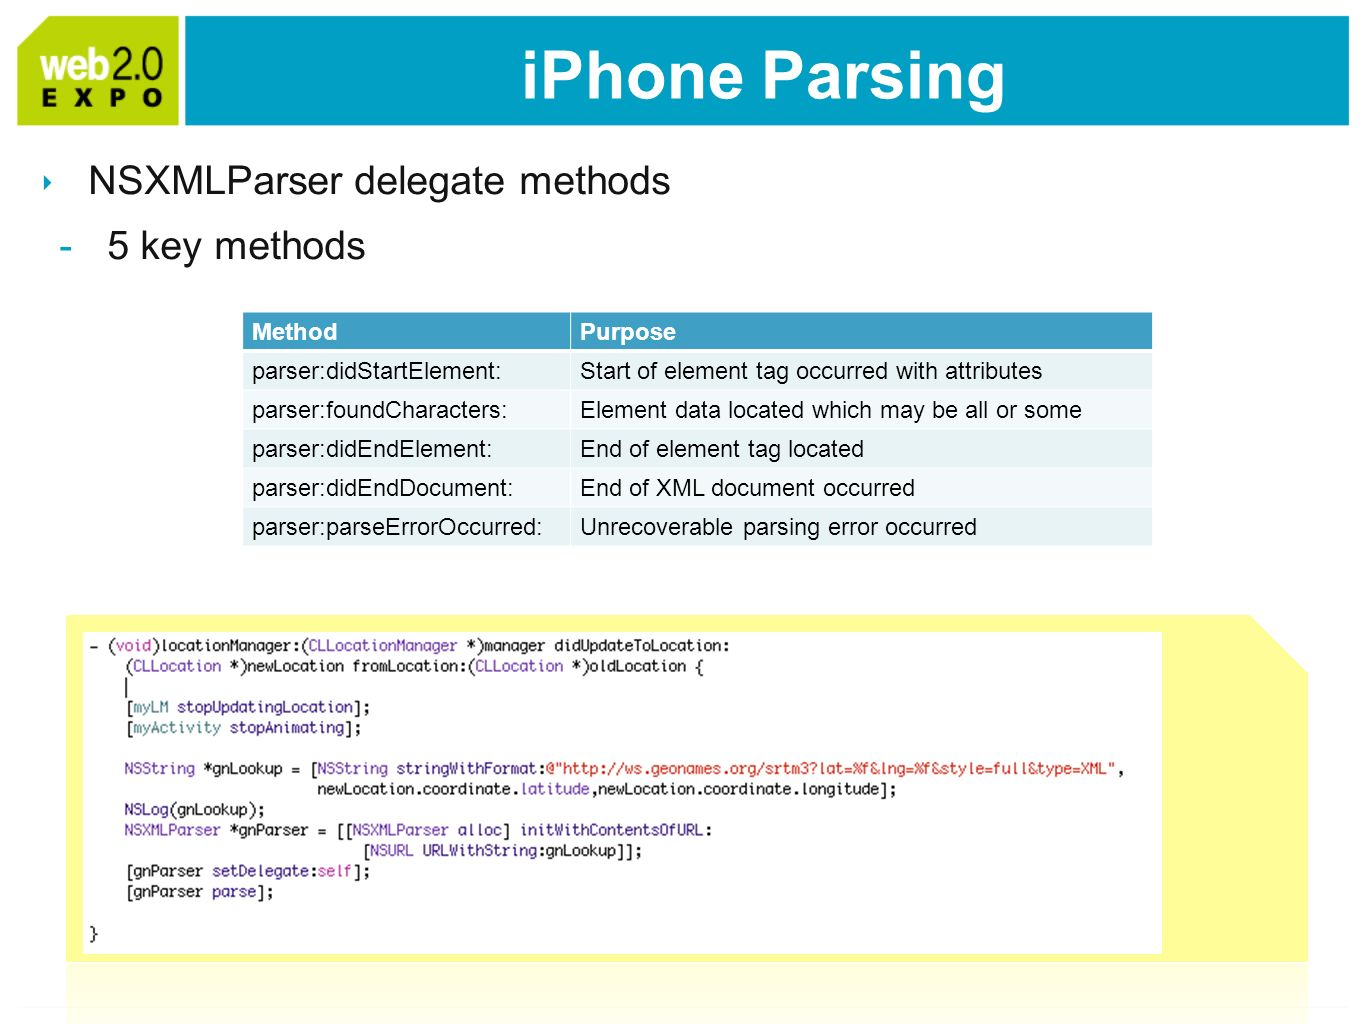 iPhone Parsing NSXMLParser delegate methods -5 key methods -Parser:didStartElement: -Parser:foundCharacters: -Parser:didEndElement: -Parser:didEndDocument: -Parser:parseErrorOccurred: MethodPurpose parser:didStartElement:Start of element tag occurred with attributes parser:foundCharacters:Element data located which may be all or some parser:didEndElement:End of element tag located parser:didEndDocument:End of XML document occurred parser:parseErrorOccurred:Unrecoverable parsing error occurred